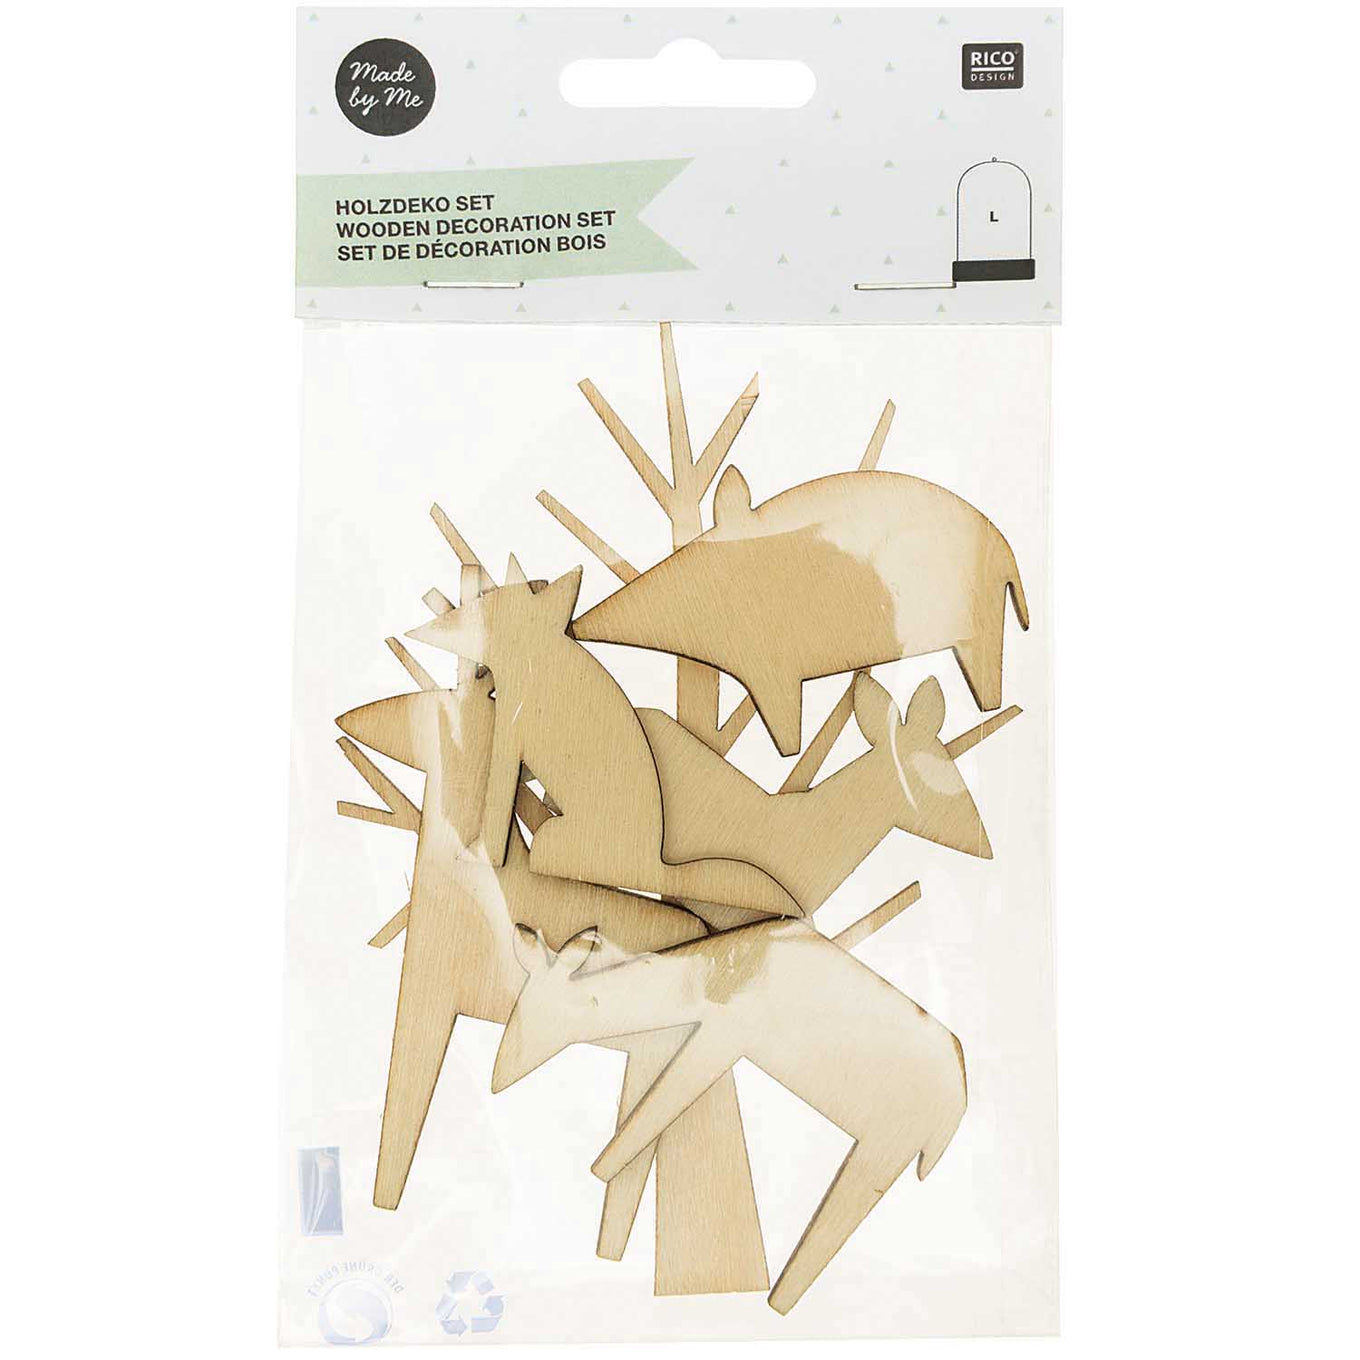 Wooden Deco Set | Large Forest Animals